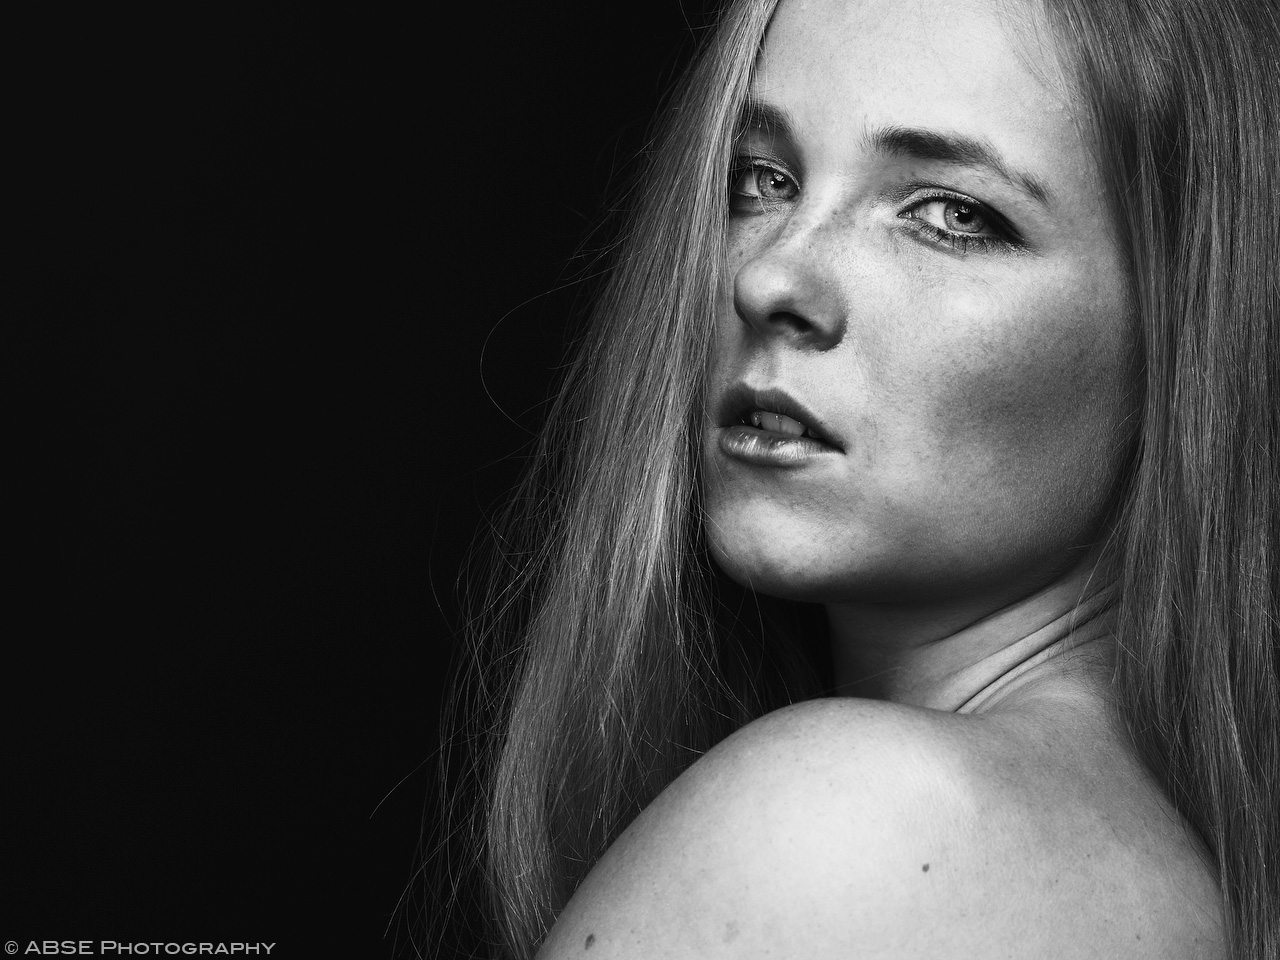 IMAGE: http://blog.absephotography.com/wp-content/uploads/2017/10/aurora-nordica-portrait-studio-black-and-white-2.jpg